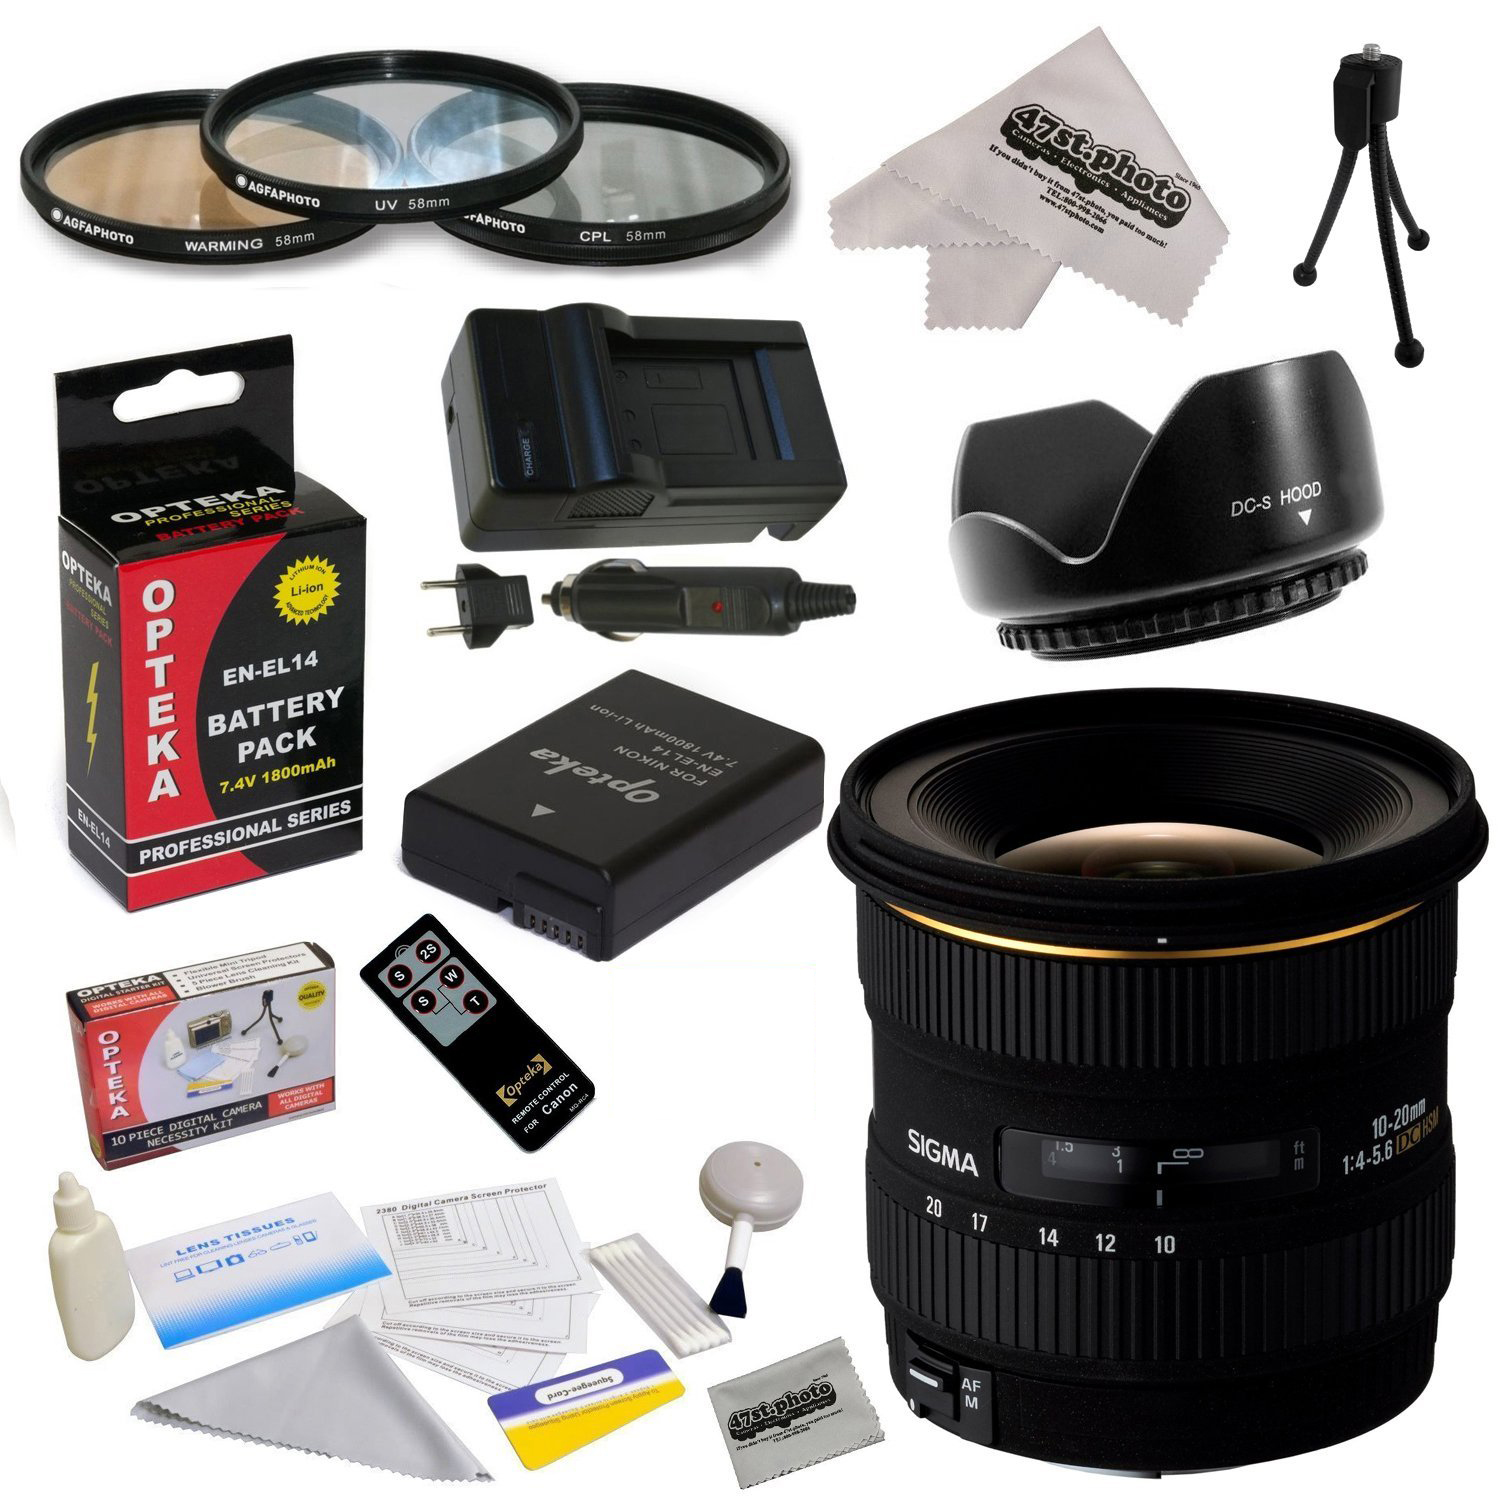 Sigma 10-20mm f/4-5.6 EX DC HSM Autofocus Lens for Nikon D3200 D3300 D5200 D5300 with 77MM 3 Piece Pro Filter Kit, EN-EL14 1800MAH, Charger, Remote, Cleaning Kit, Microfiber Cloth!